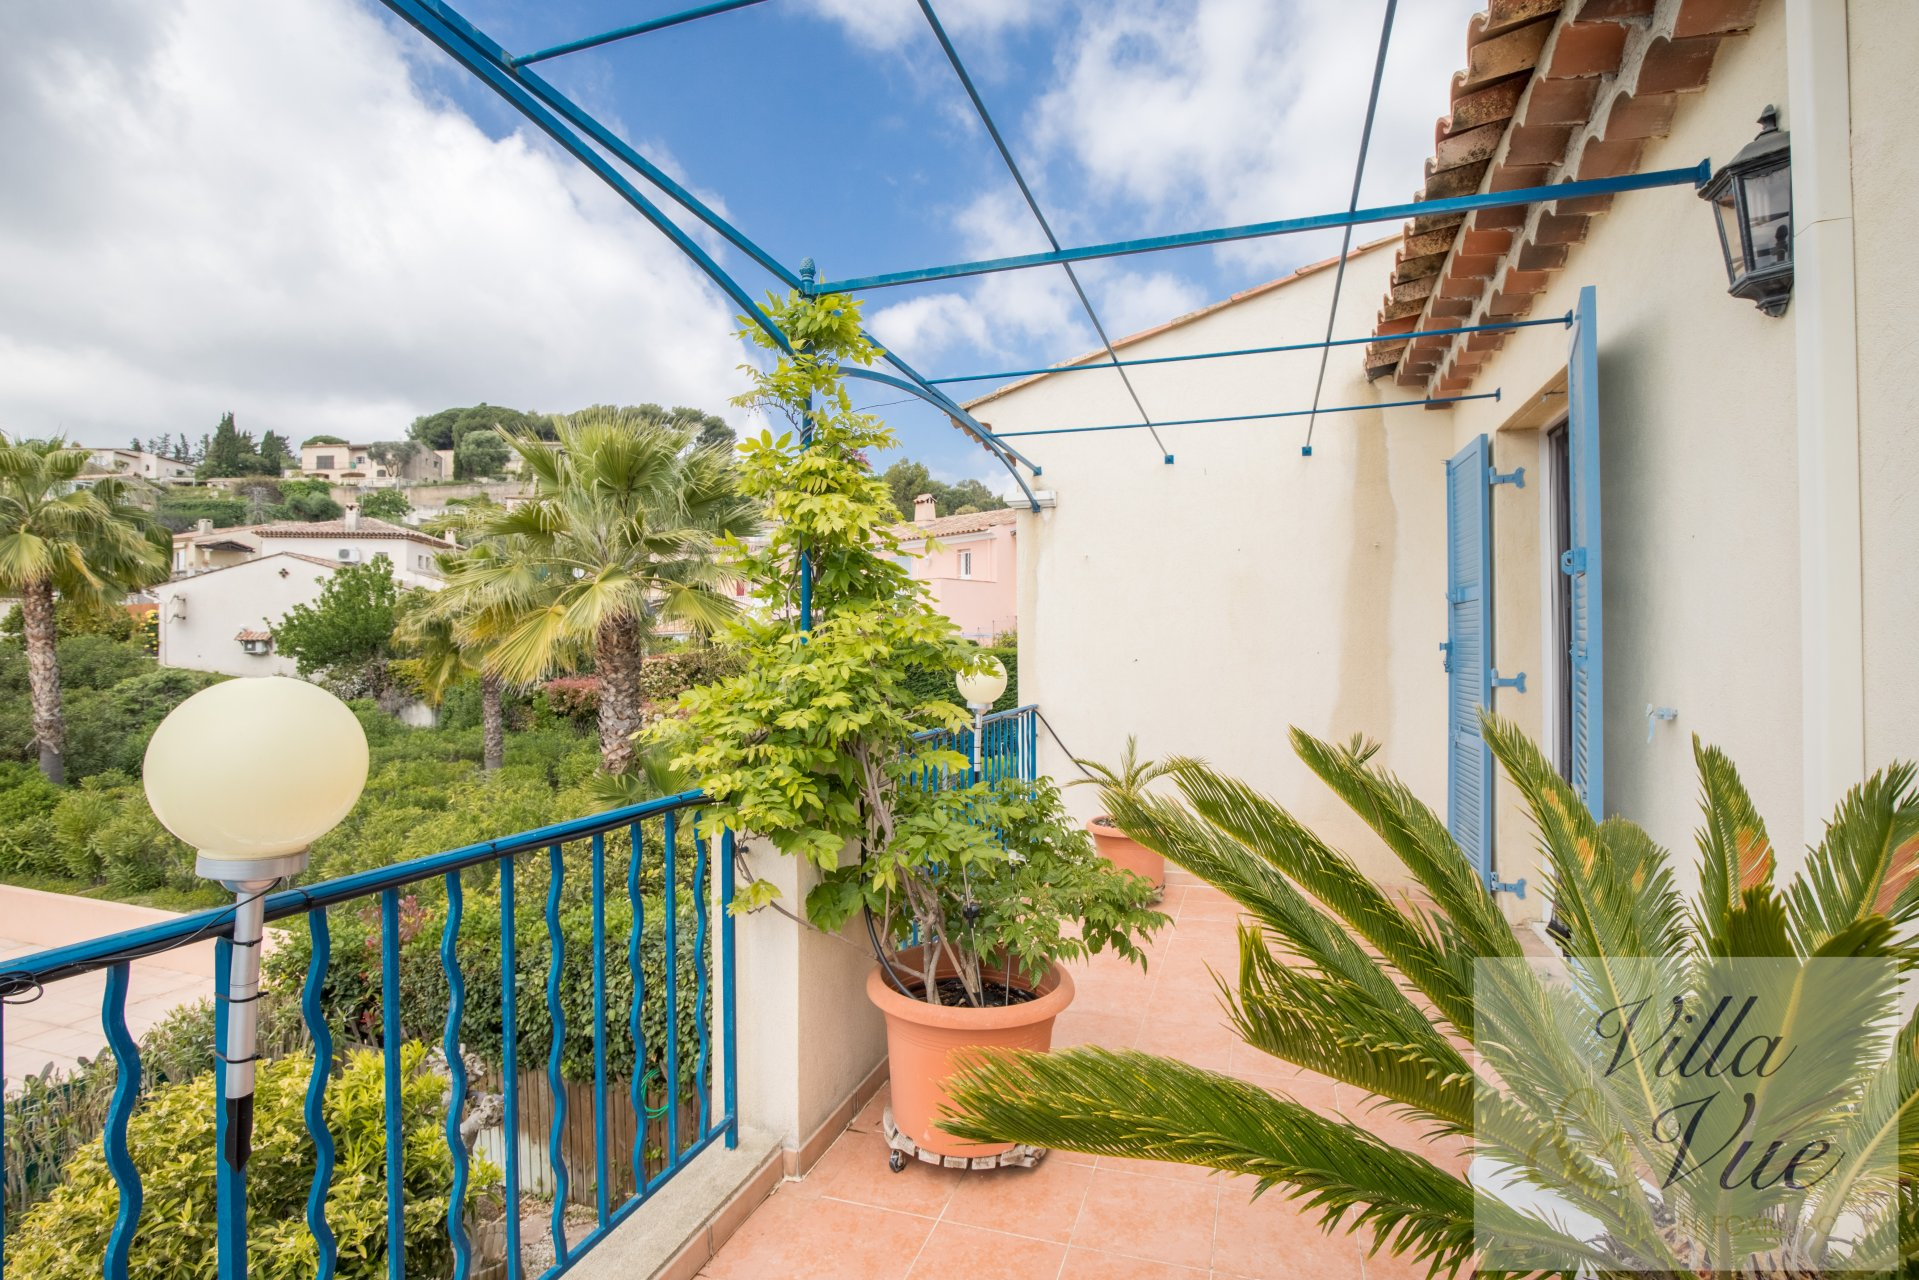 On the French riviera, villa for sales ready to use 3 bedrooms villa